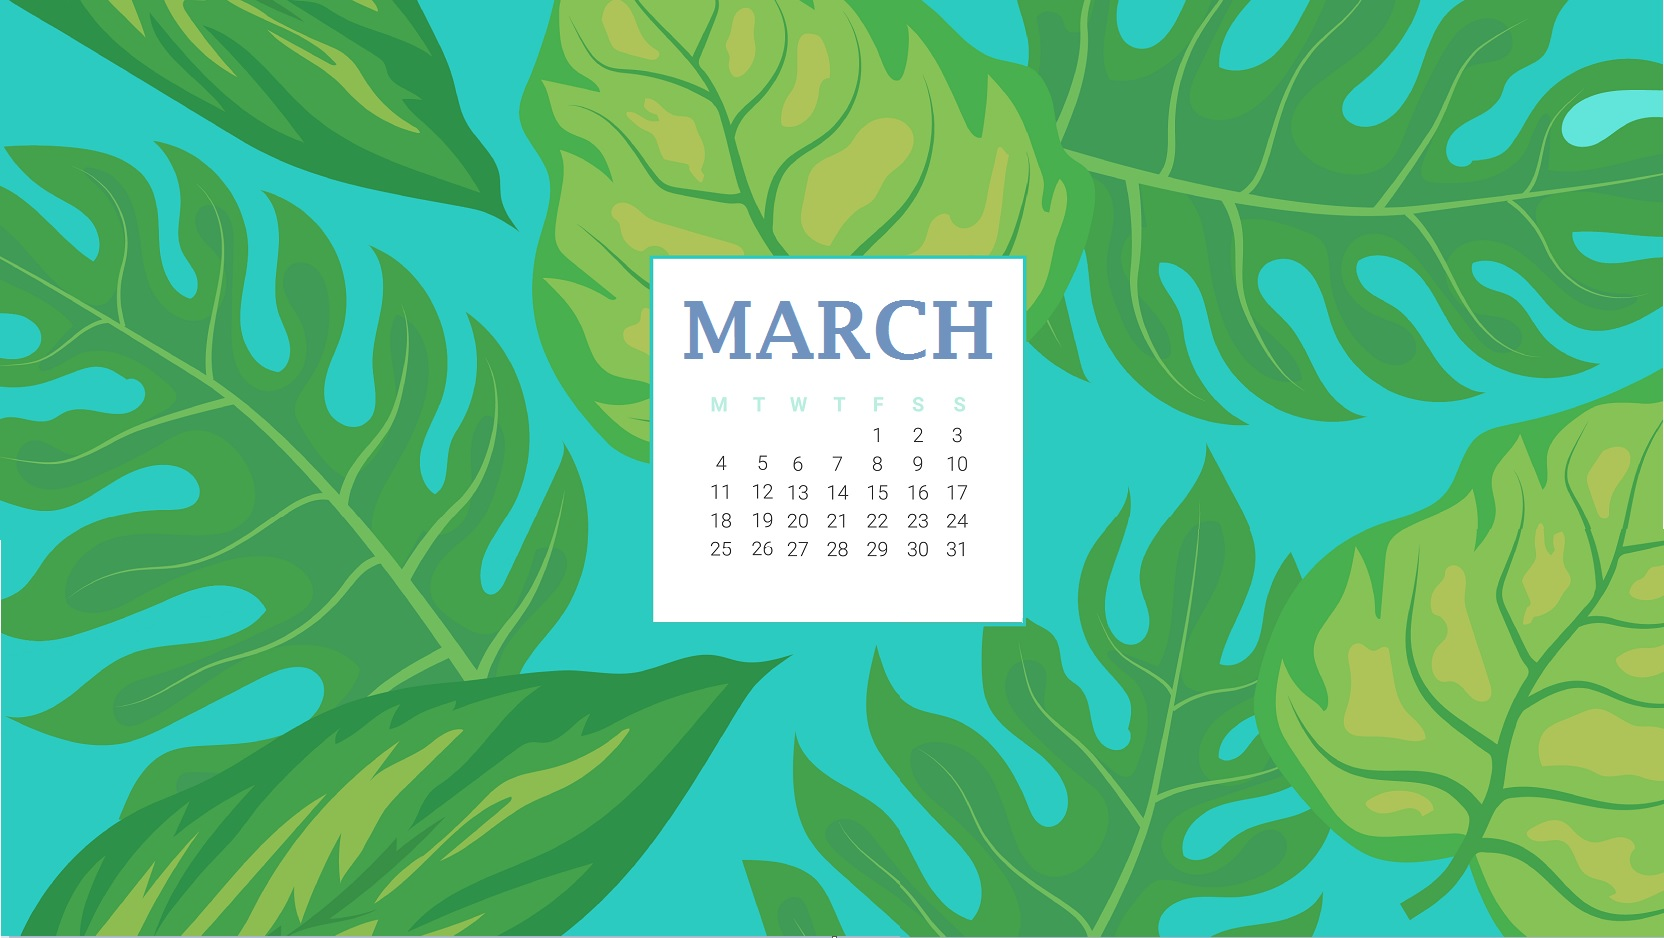 Desktop Wallpaper With March 2019 Calendar